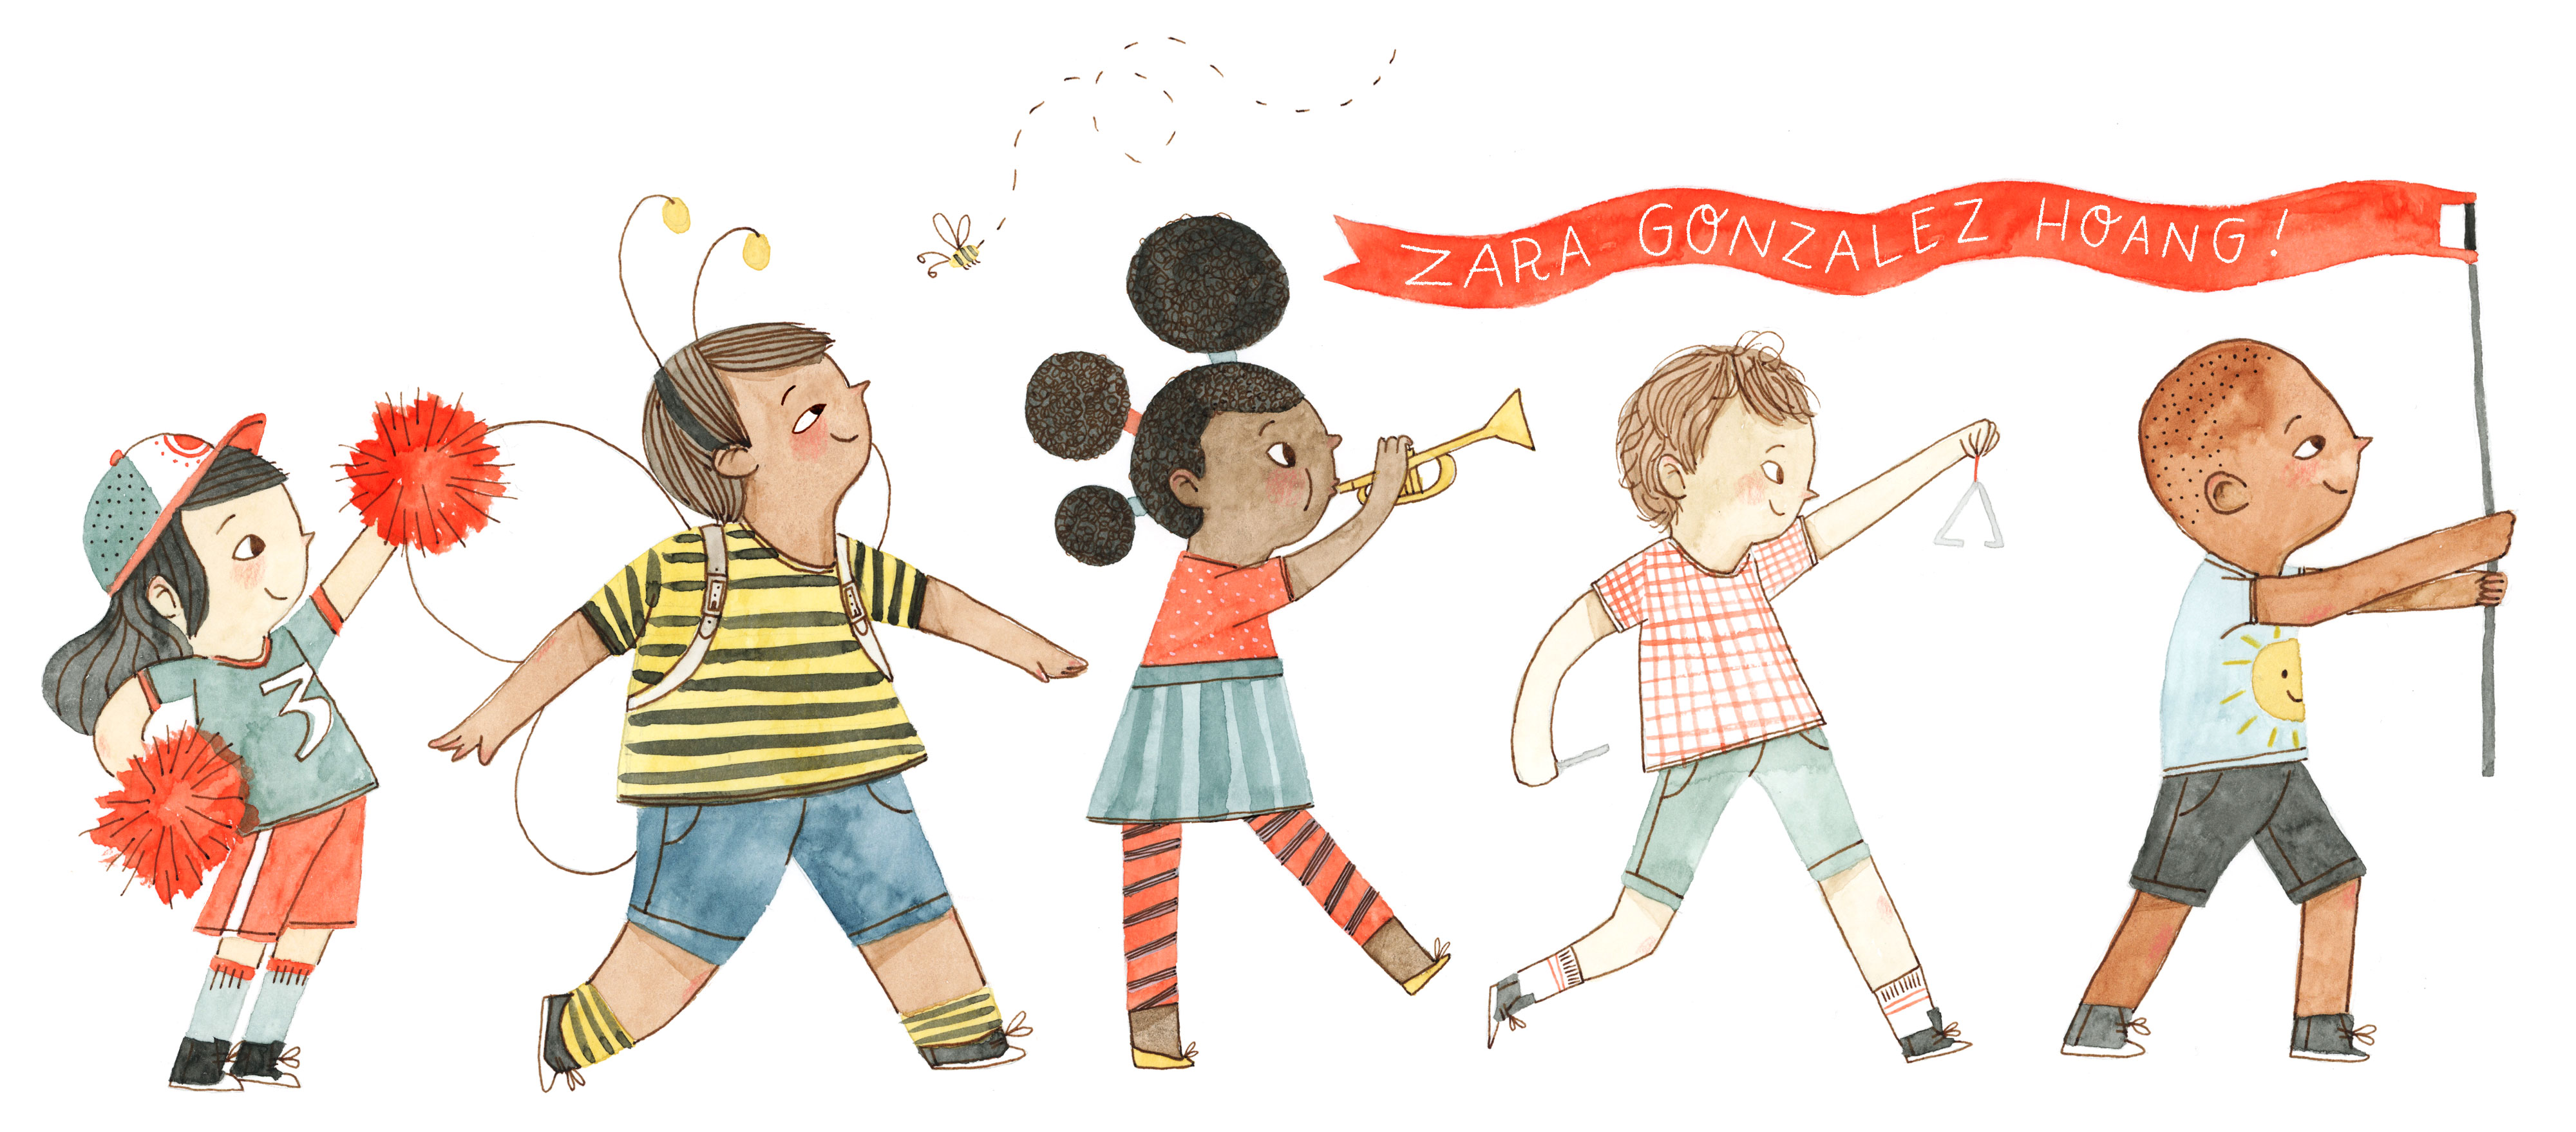 Zara Gonzalez Hoang Illustration